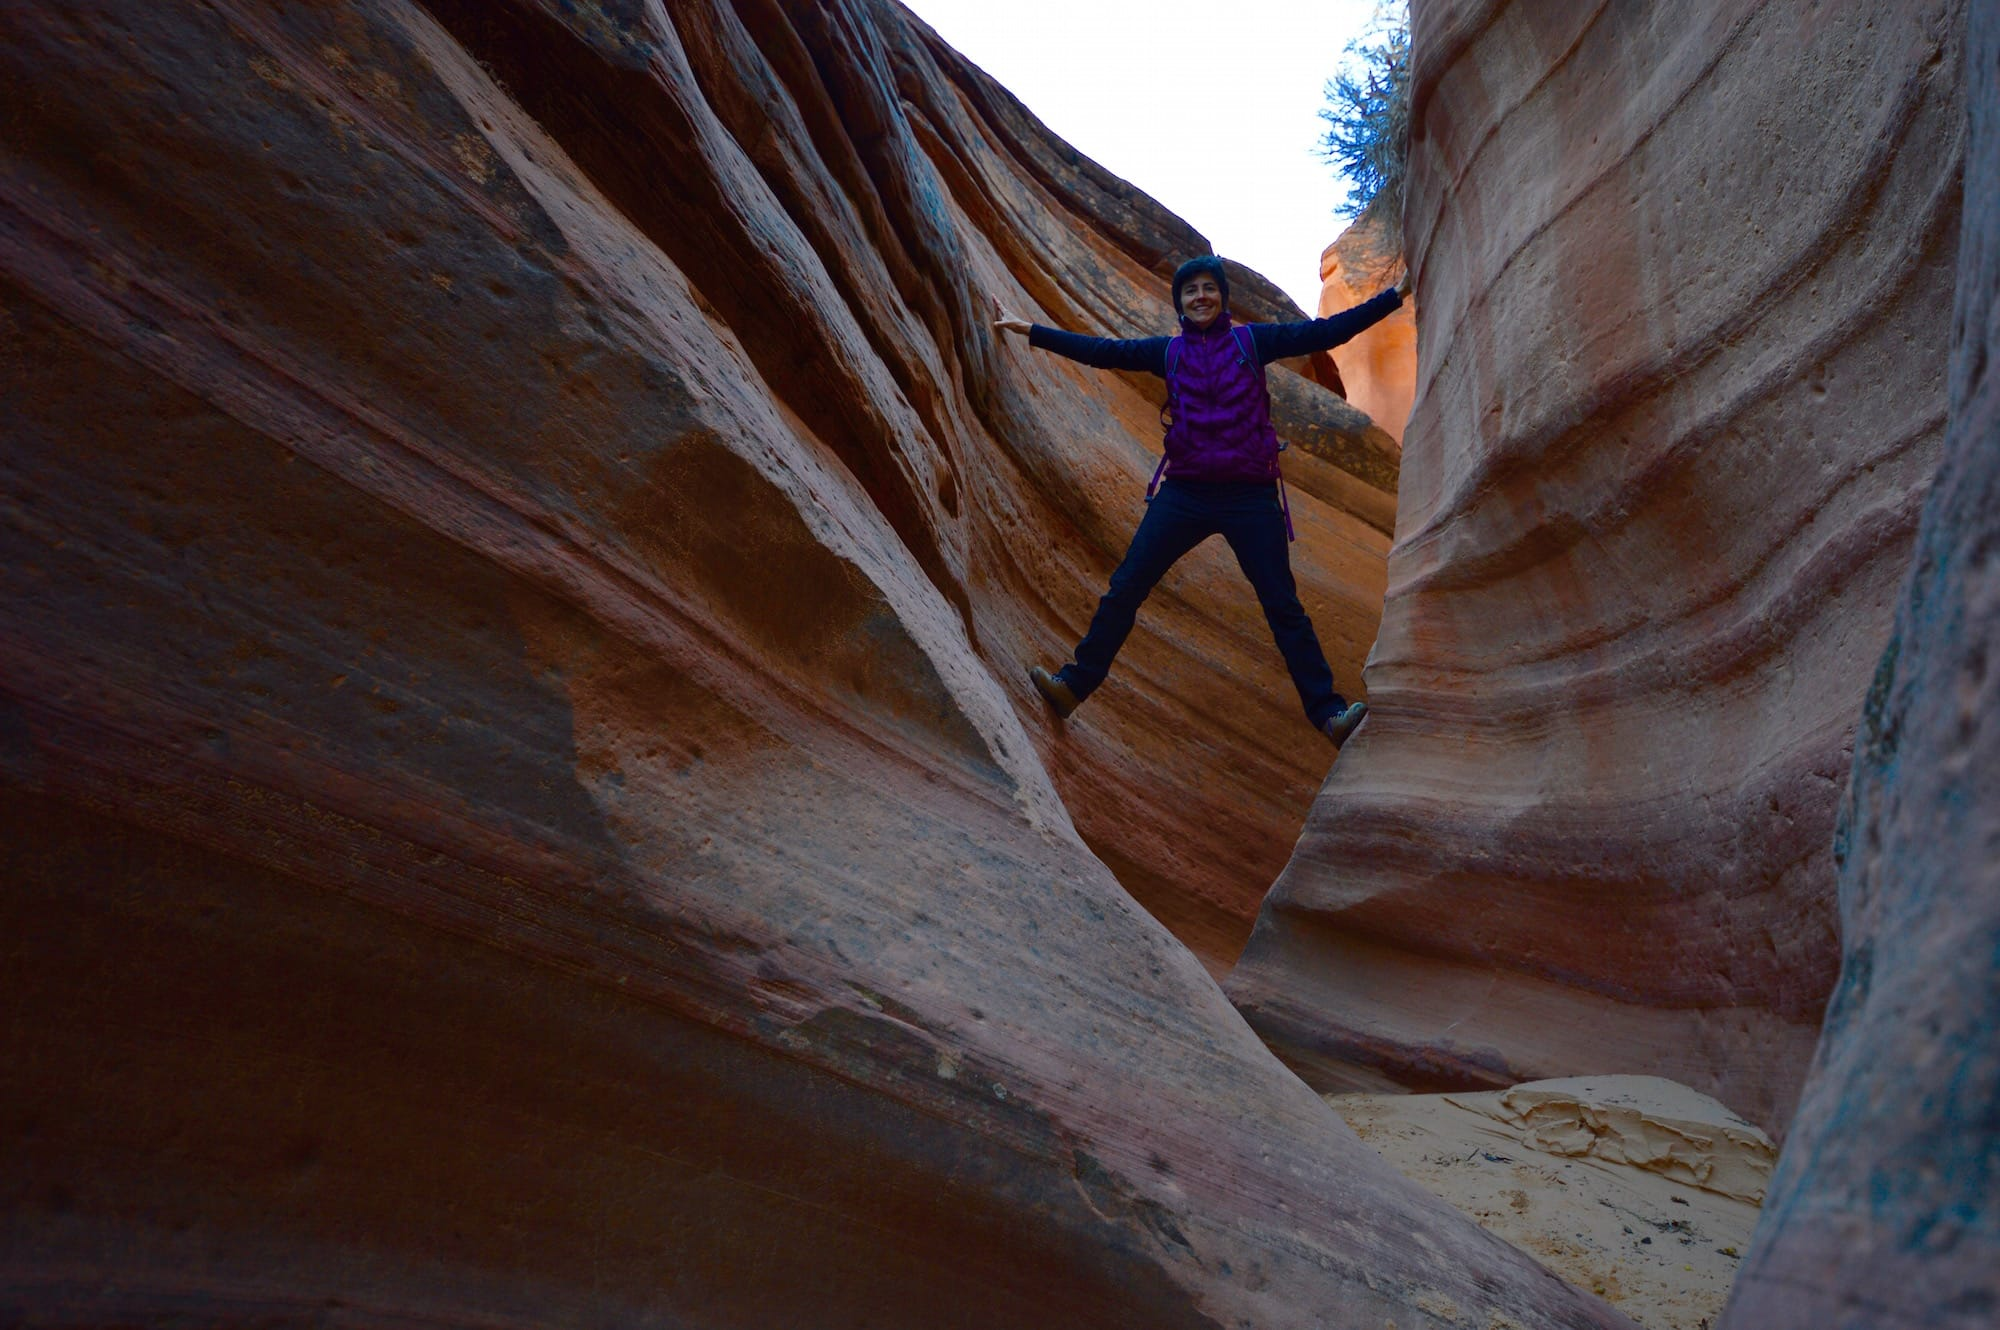 Woman climbs in slot canyon